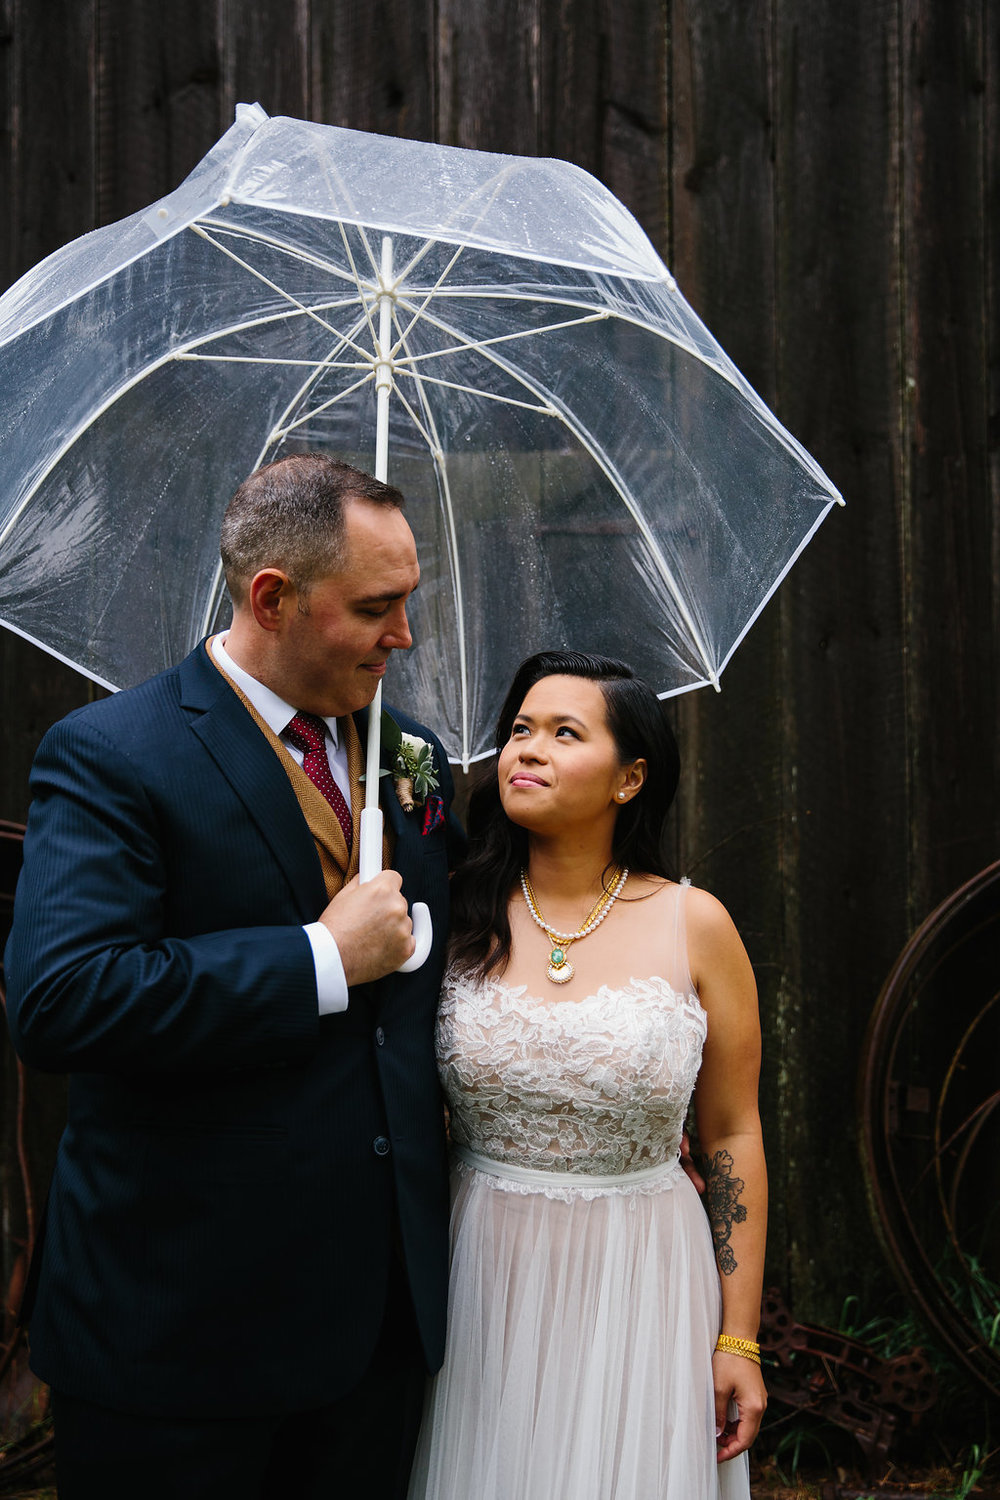 Alex+Stephanie-127.jpg